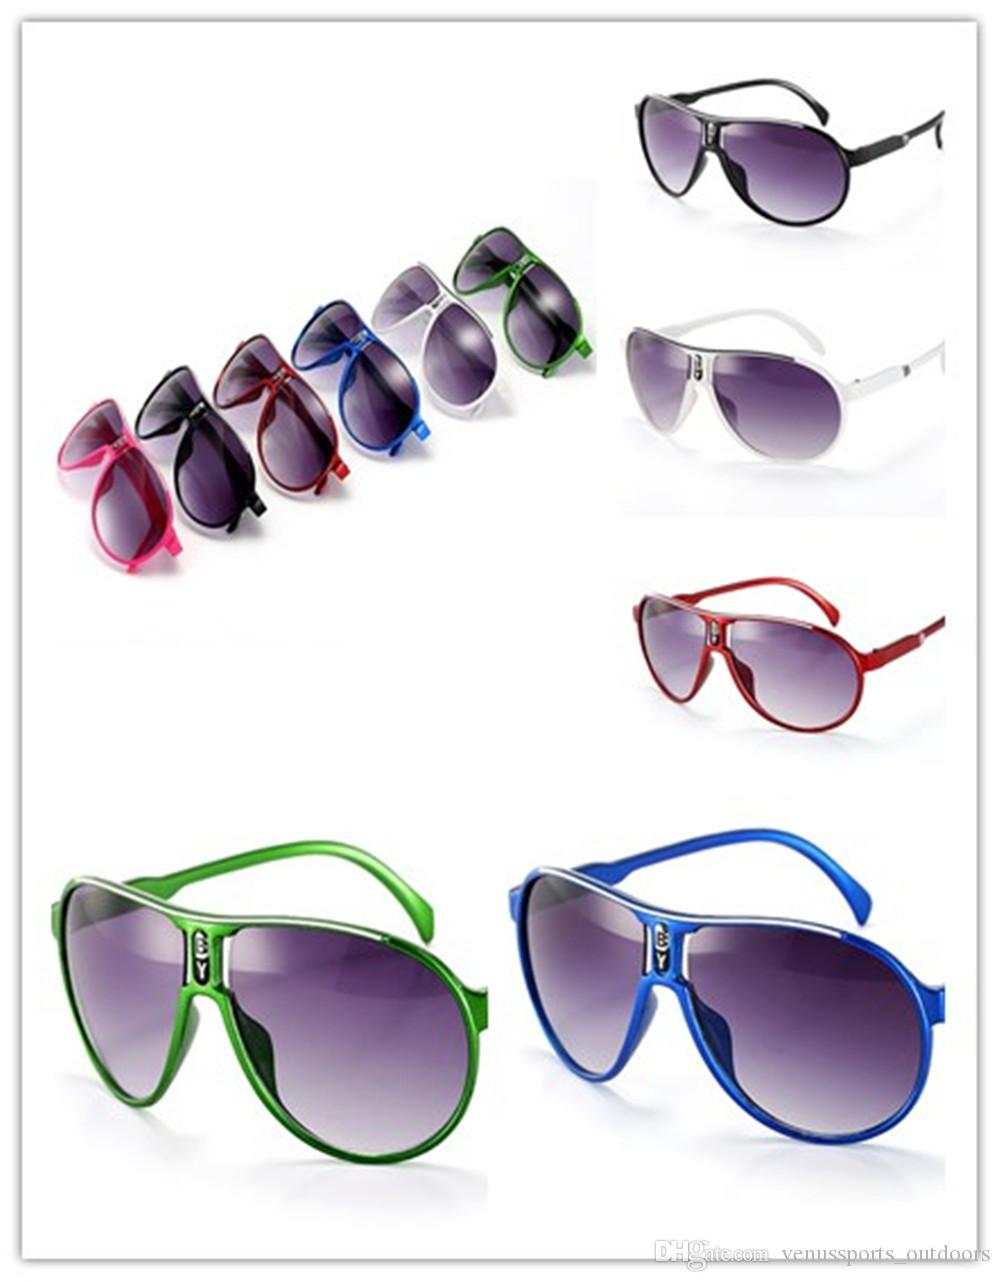 112d3a6823b5 2019 Cute Kids Sunglasses,Cool Kids Sunglasses,Kids Plastic Sunglasses  Promotional Gift Kids Sport Sunglass From Venussports_outdoors, $1.46 |  DHgate.Com